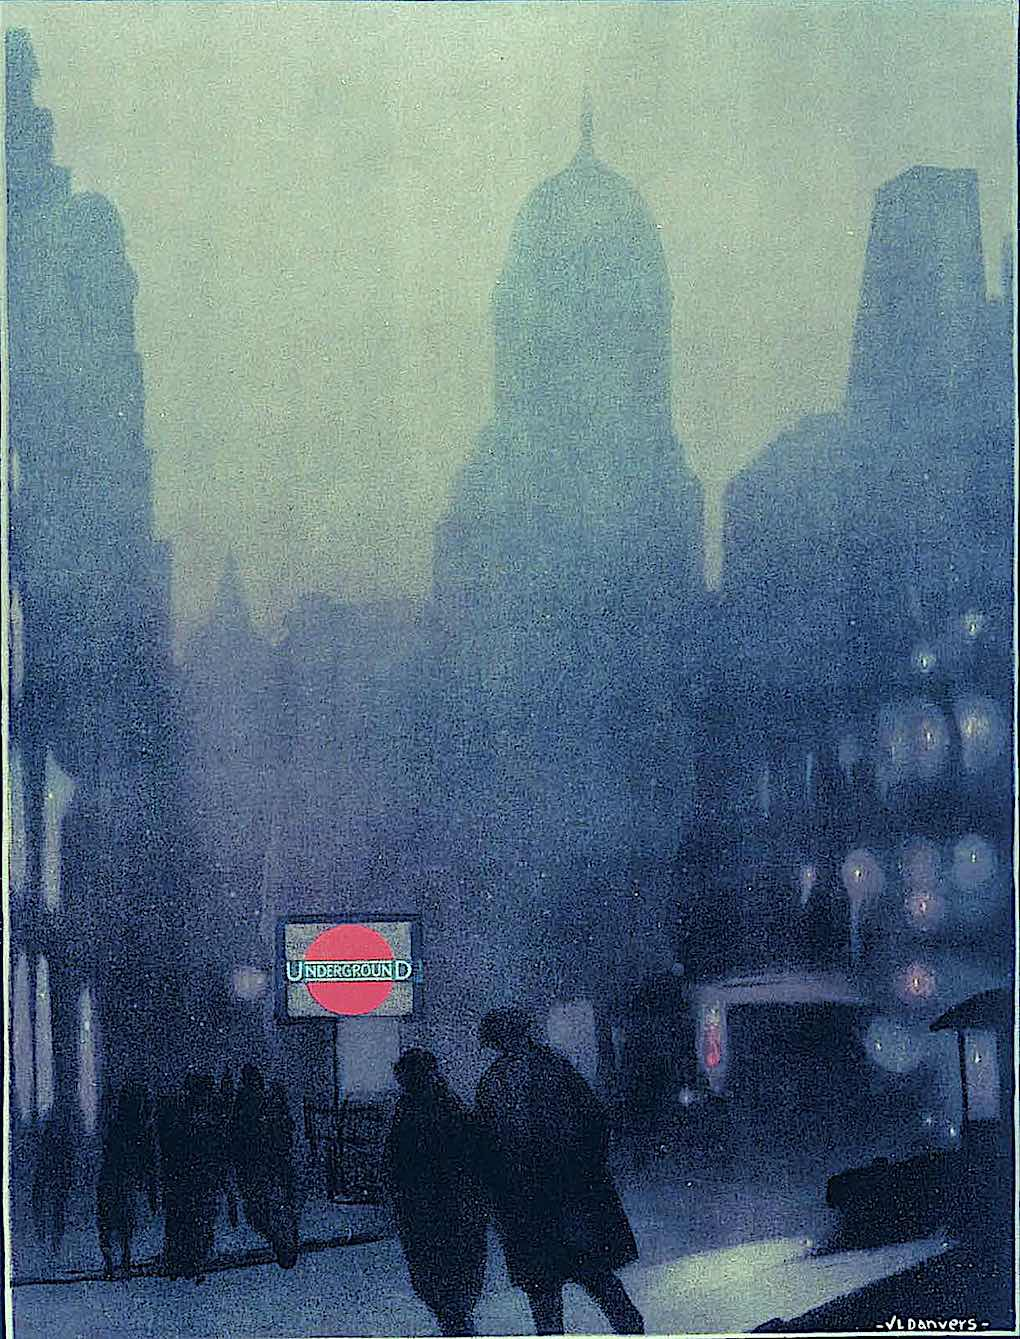 a Verney L. Danvers 1924 poster illustration of a London subway eantrance at foggy night